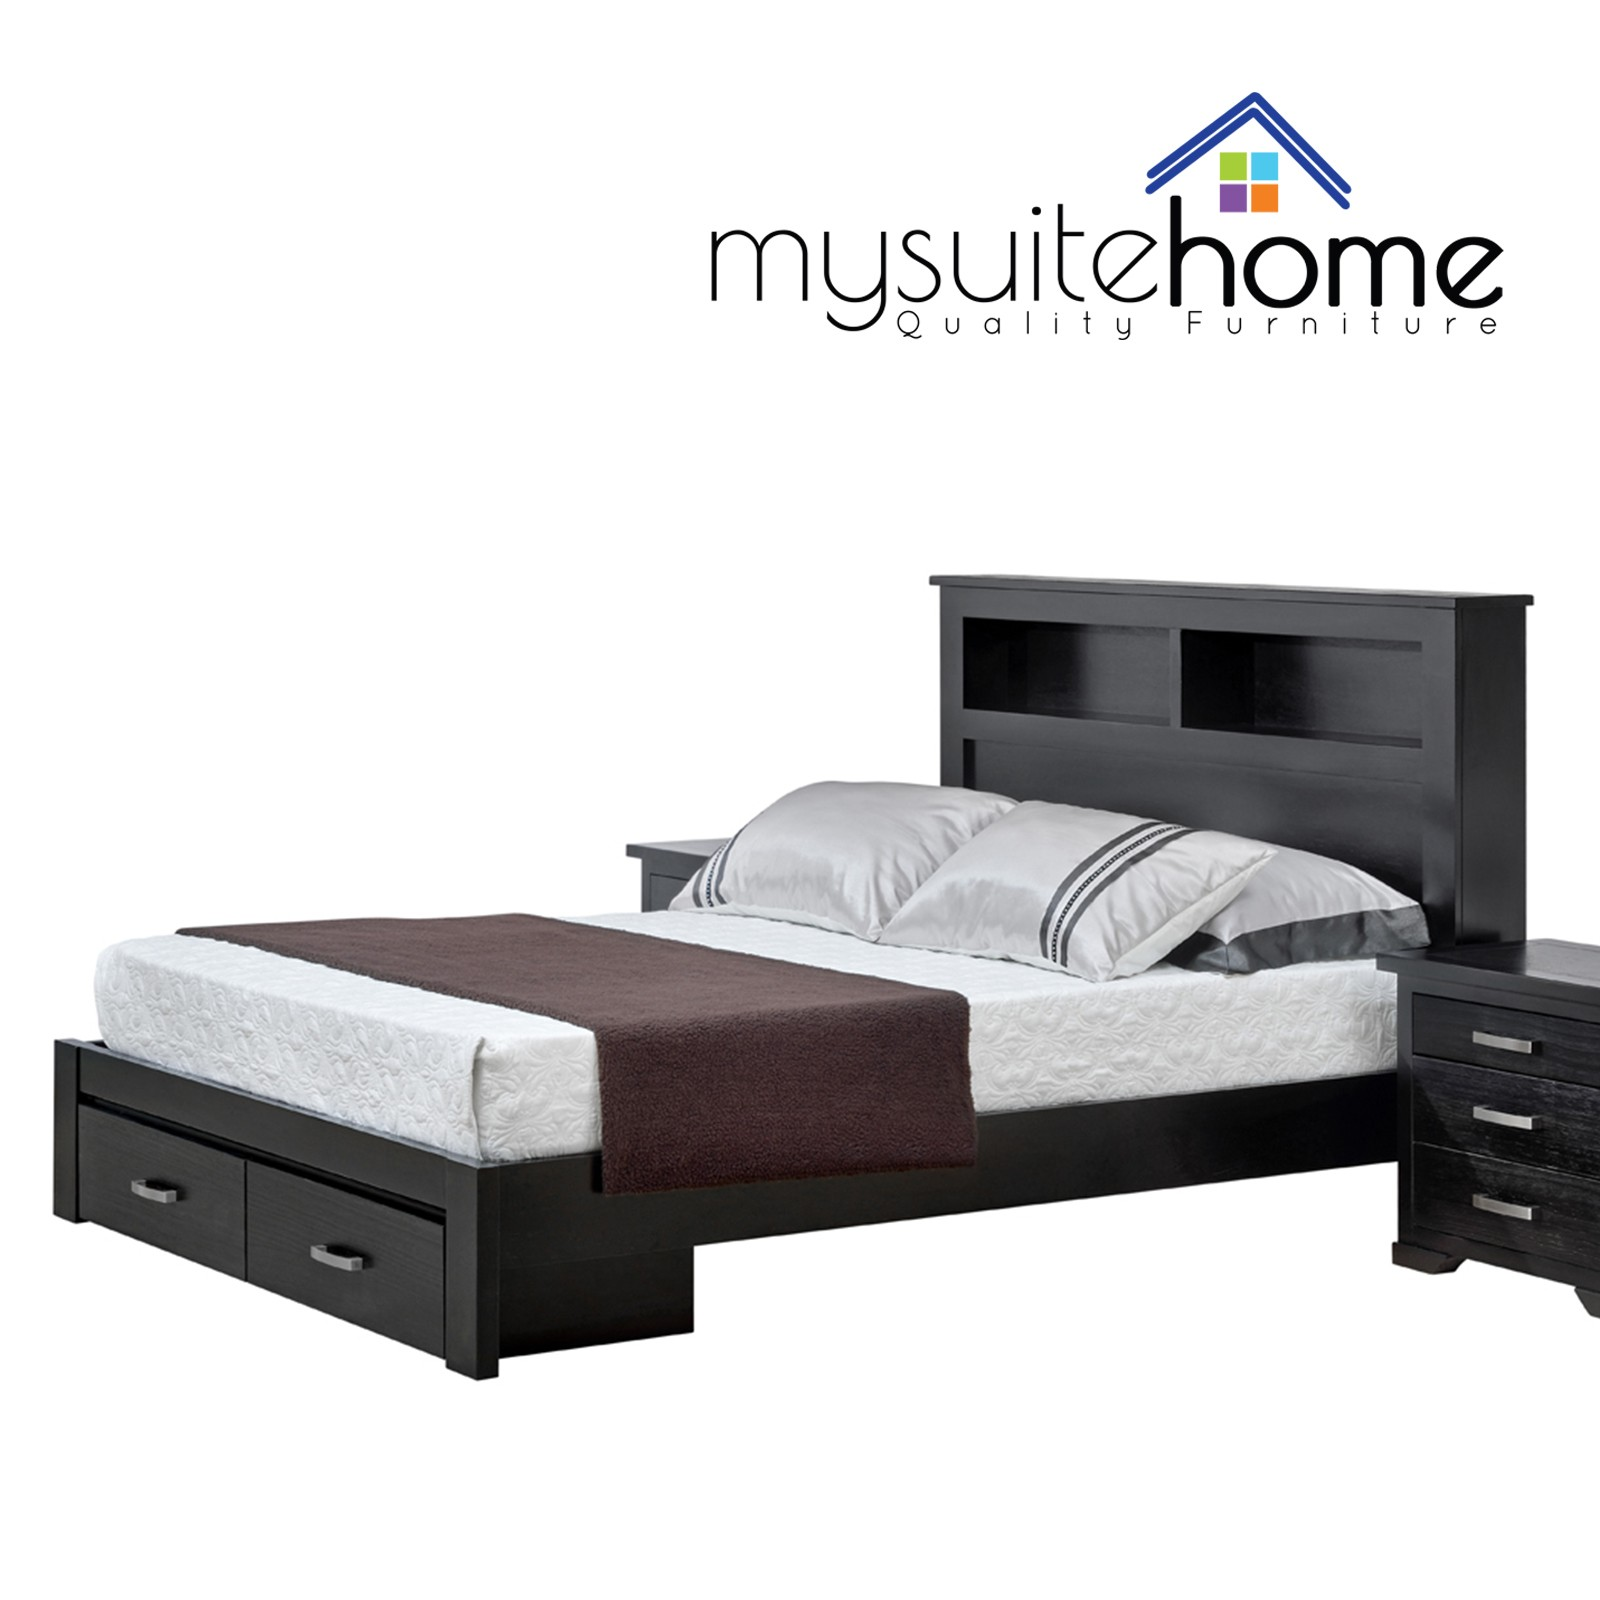 fortytwo bed d size mikala home queen furniture b cor frames